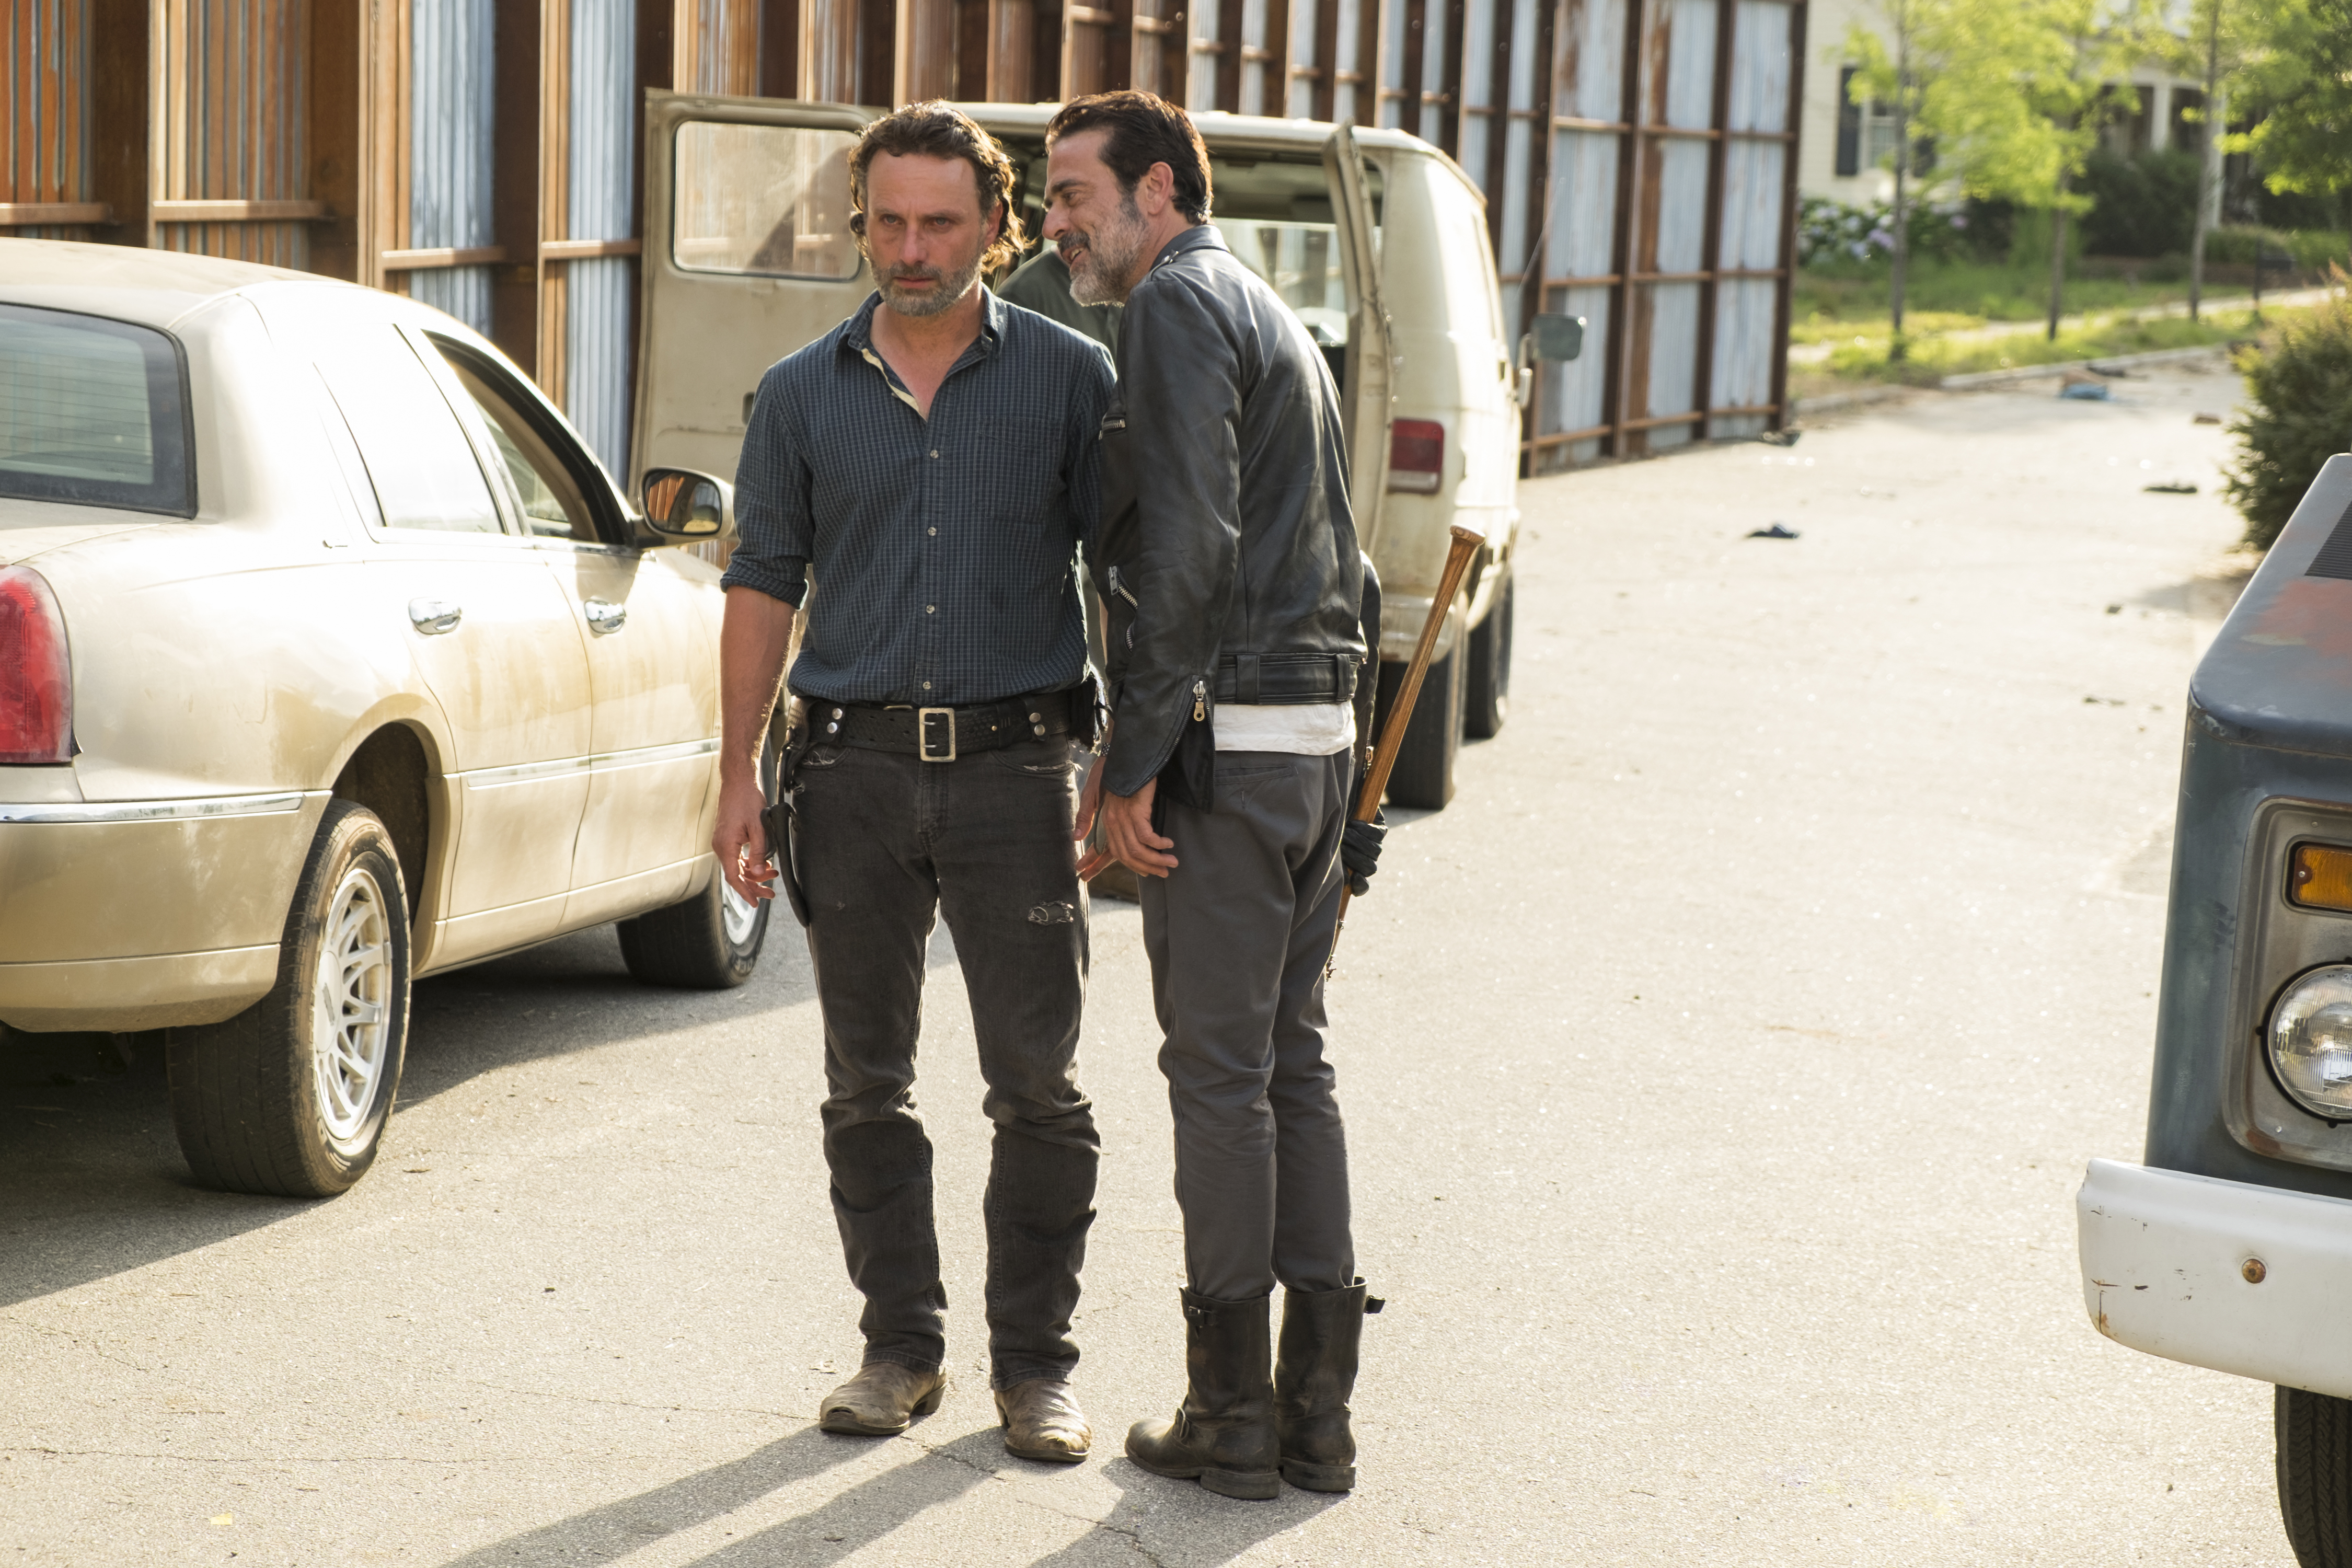 Negan creeps Rick out as often as he scares him.